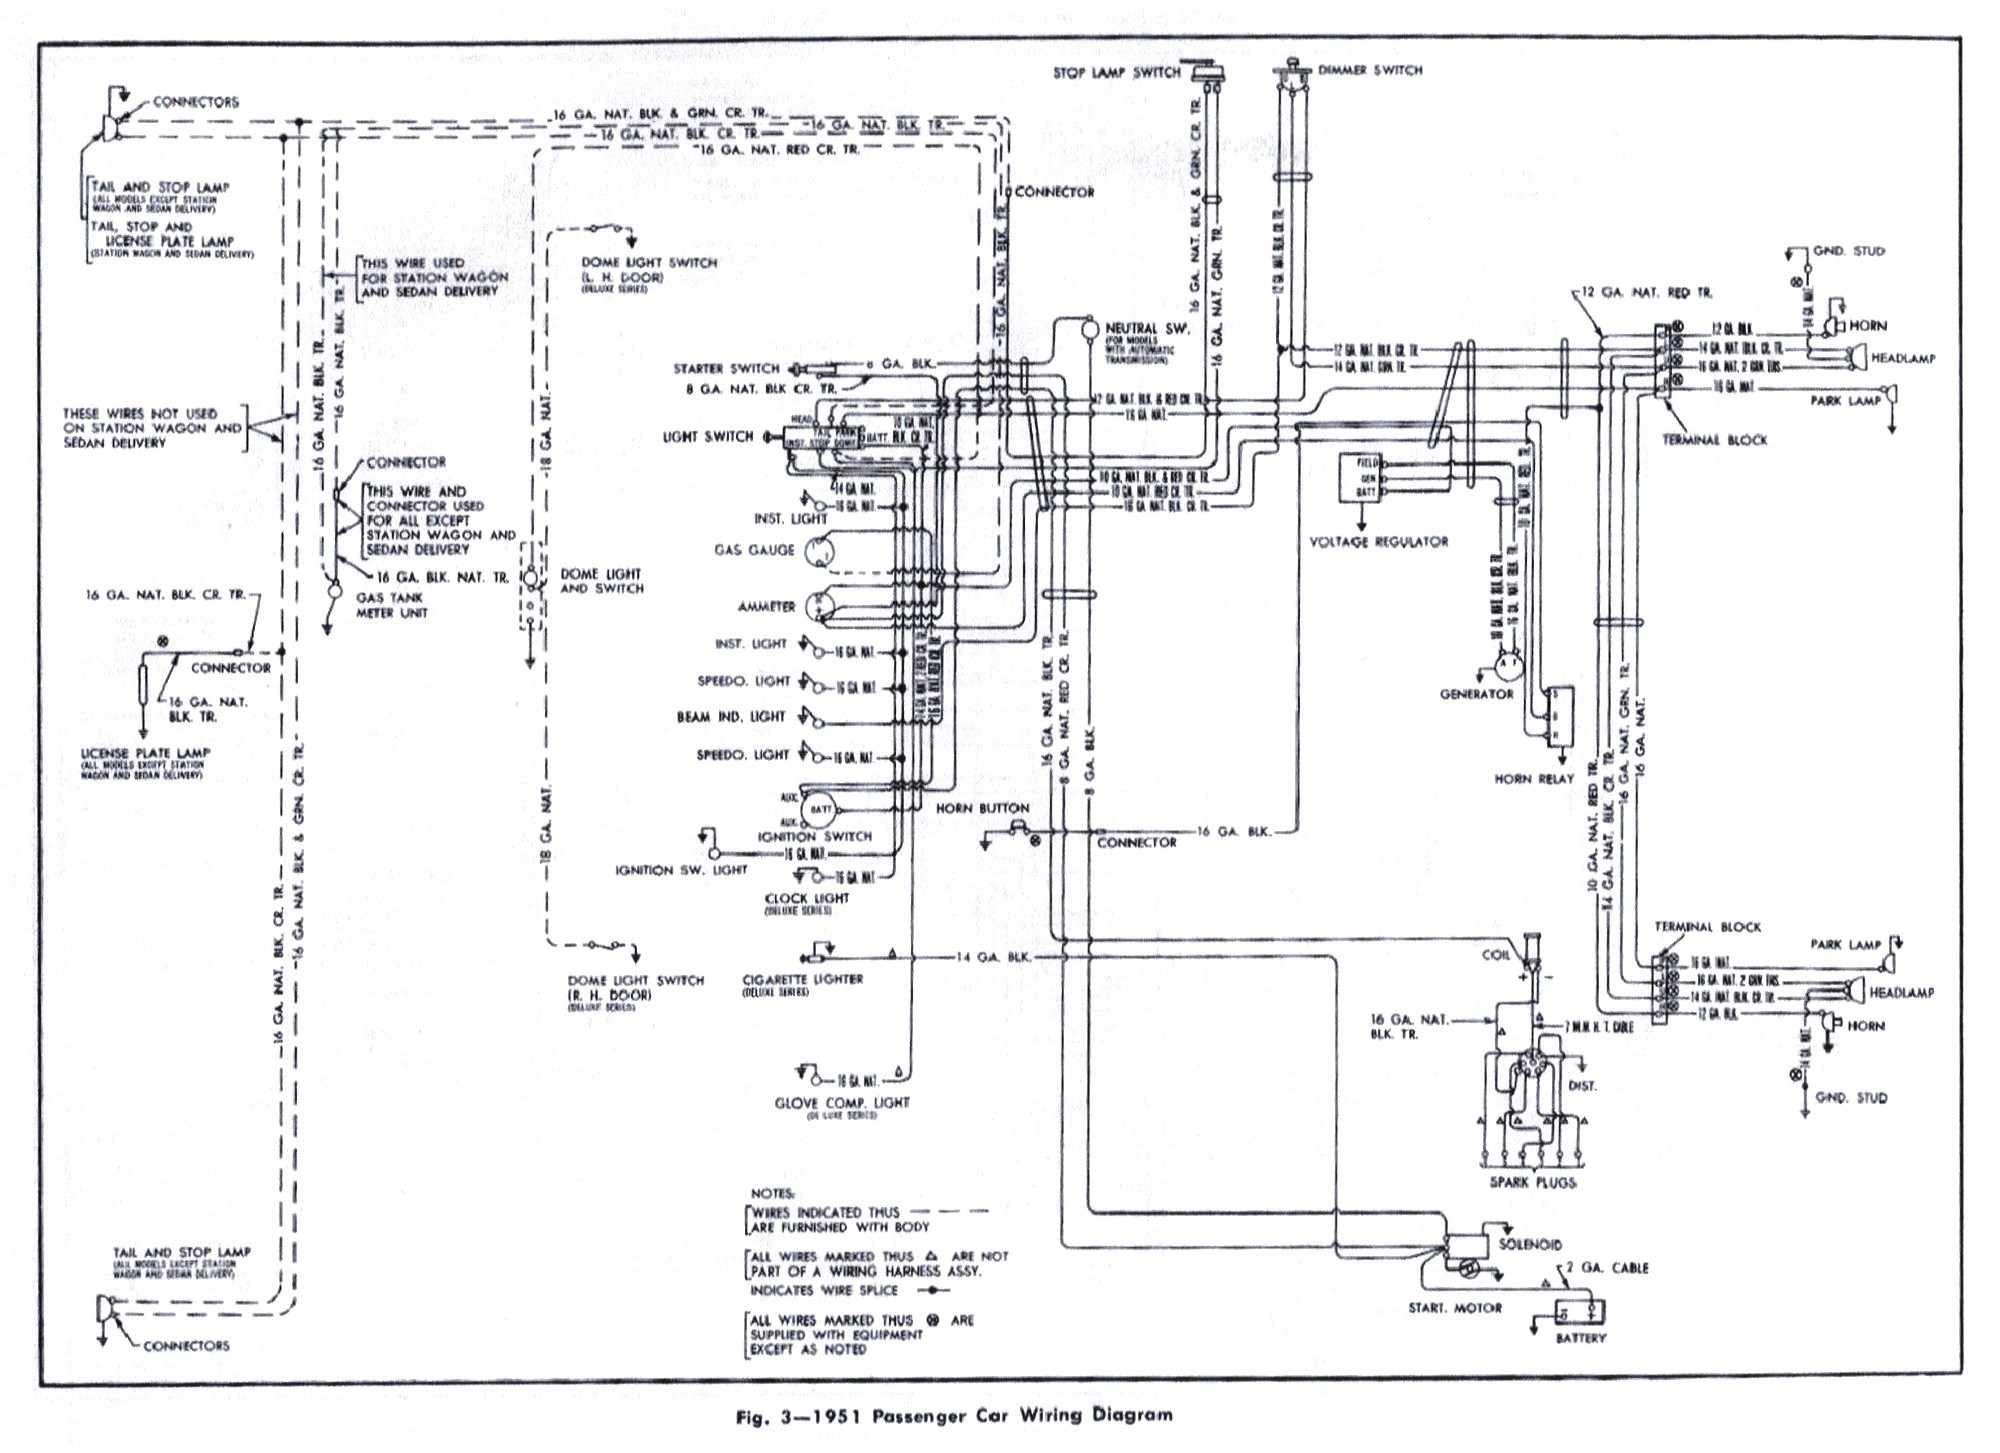 hight resolution of 1987 corvette fuel pump wiring diagram another wiring diagrams u2022 rh benpaterson co uk 1985 corvette